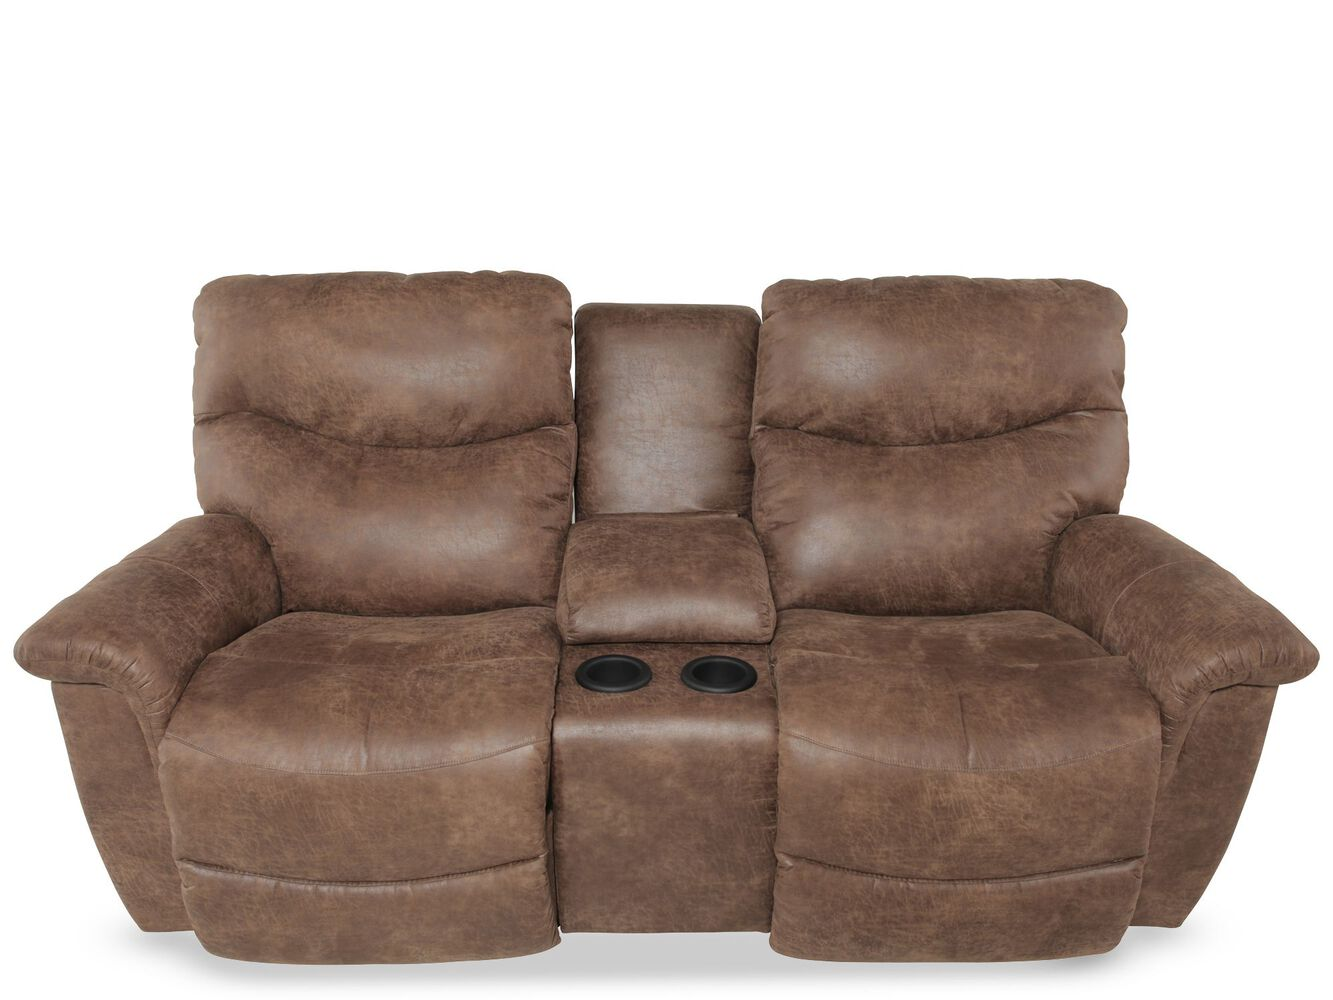 Double Recliner La Z Boy Mathis Brothers